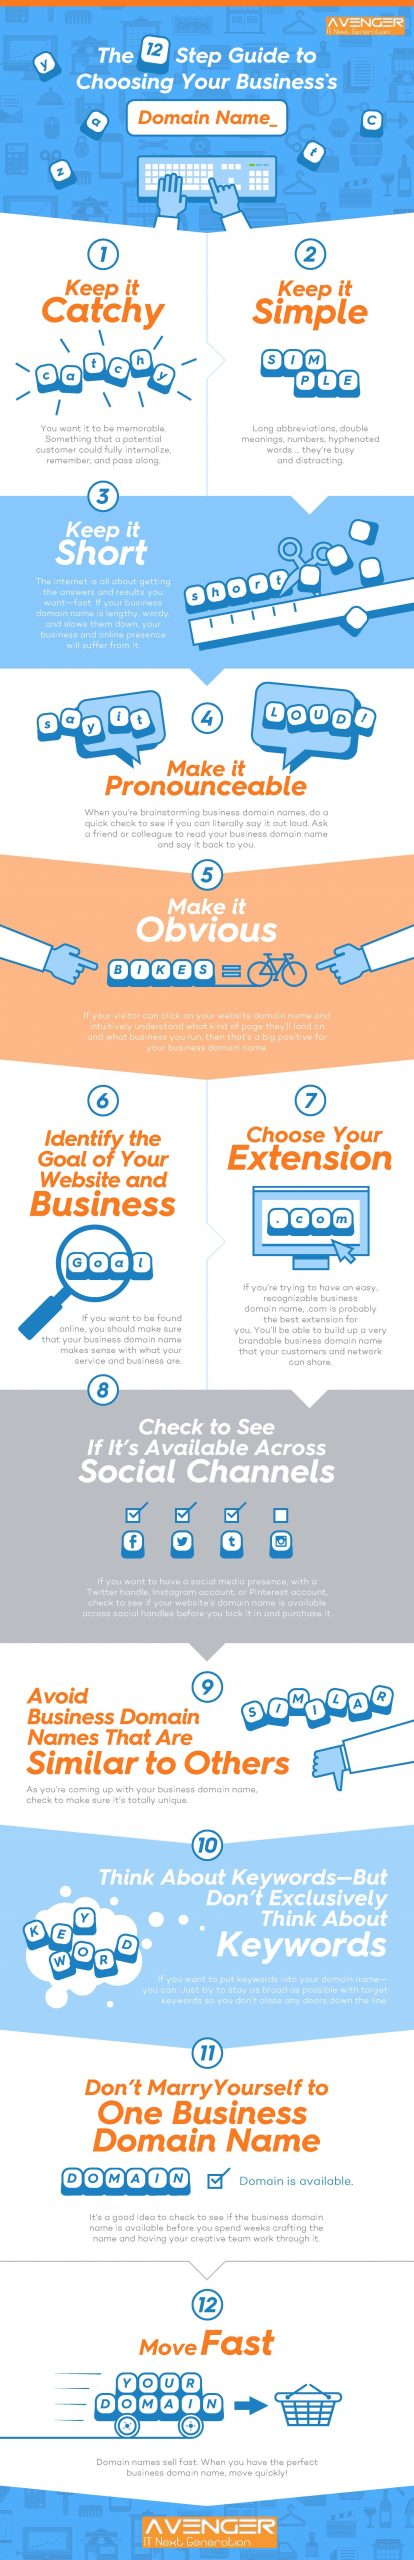 Record the best domain for the site - 12 principles for choosing the right domain name infographic